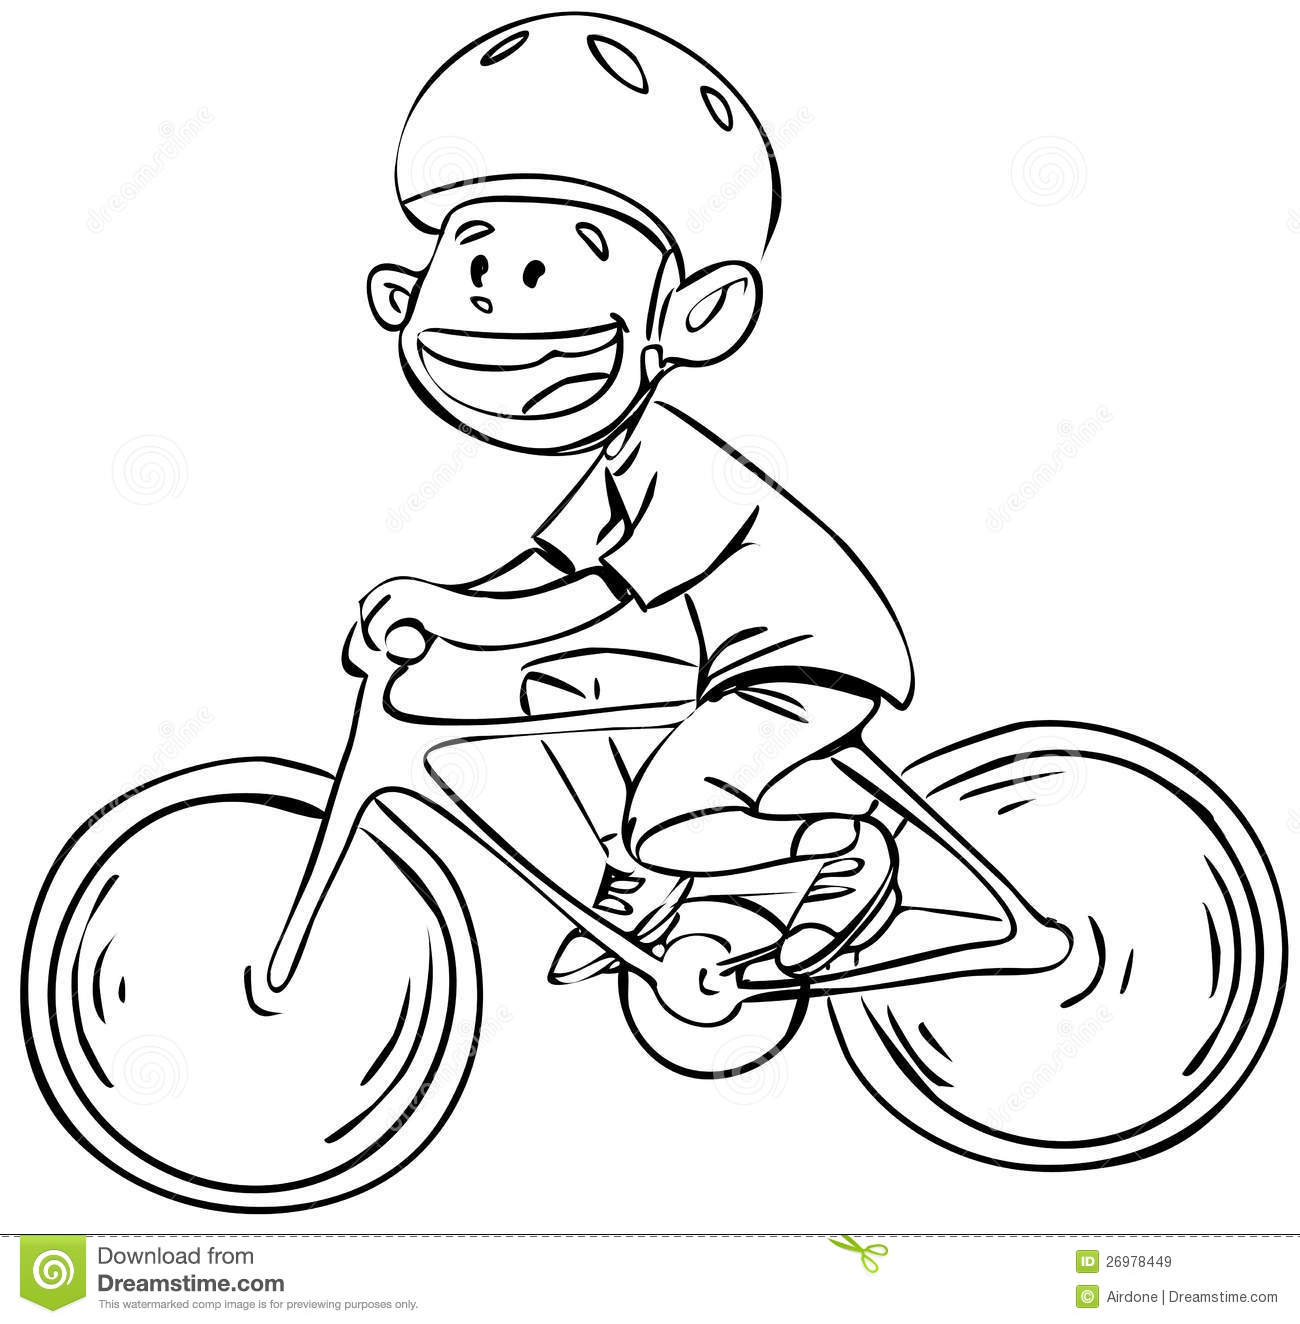 Bicycle Boy In Black And White Stock Vector - Illustration of ... for Bicycle Clipart Black And White  51ane